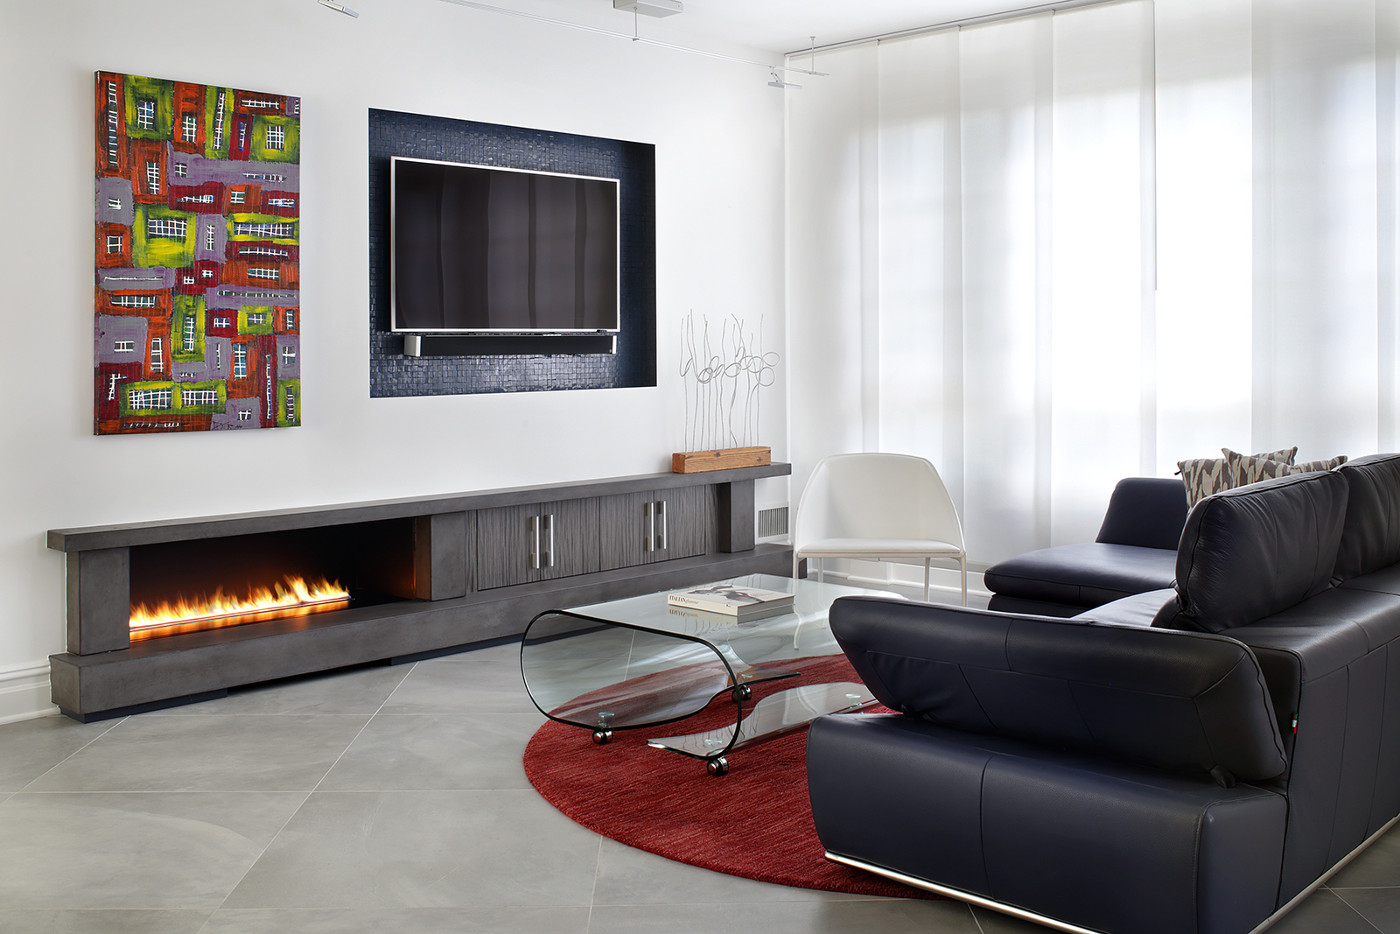 modern concrete kitchen - concrete linear fireplace - family room - ribbon fireplace